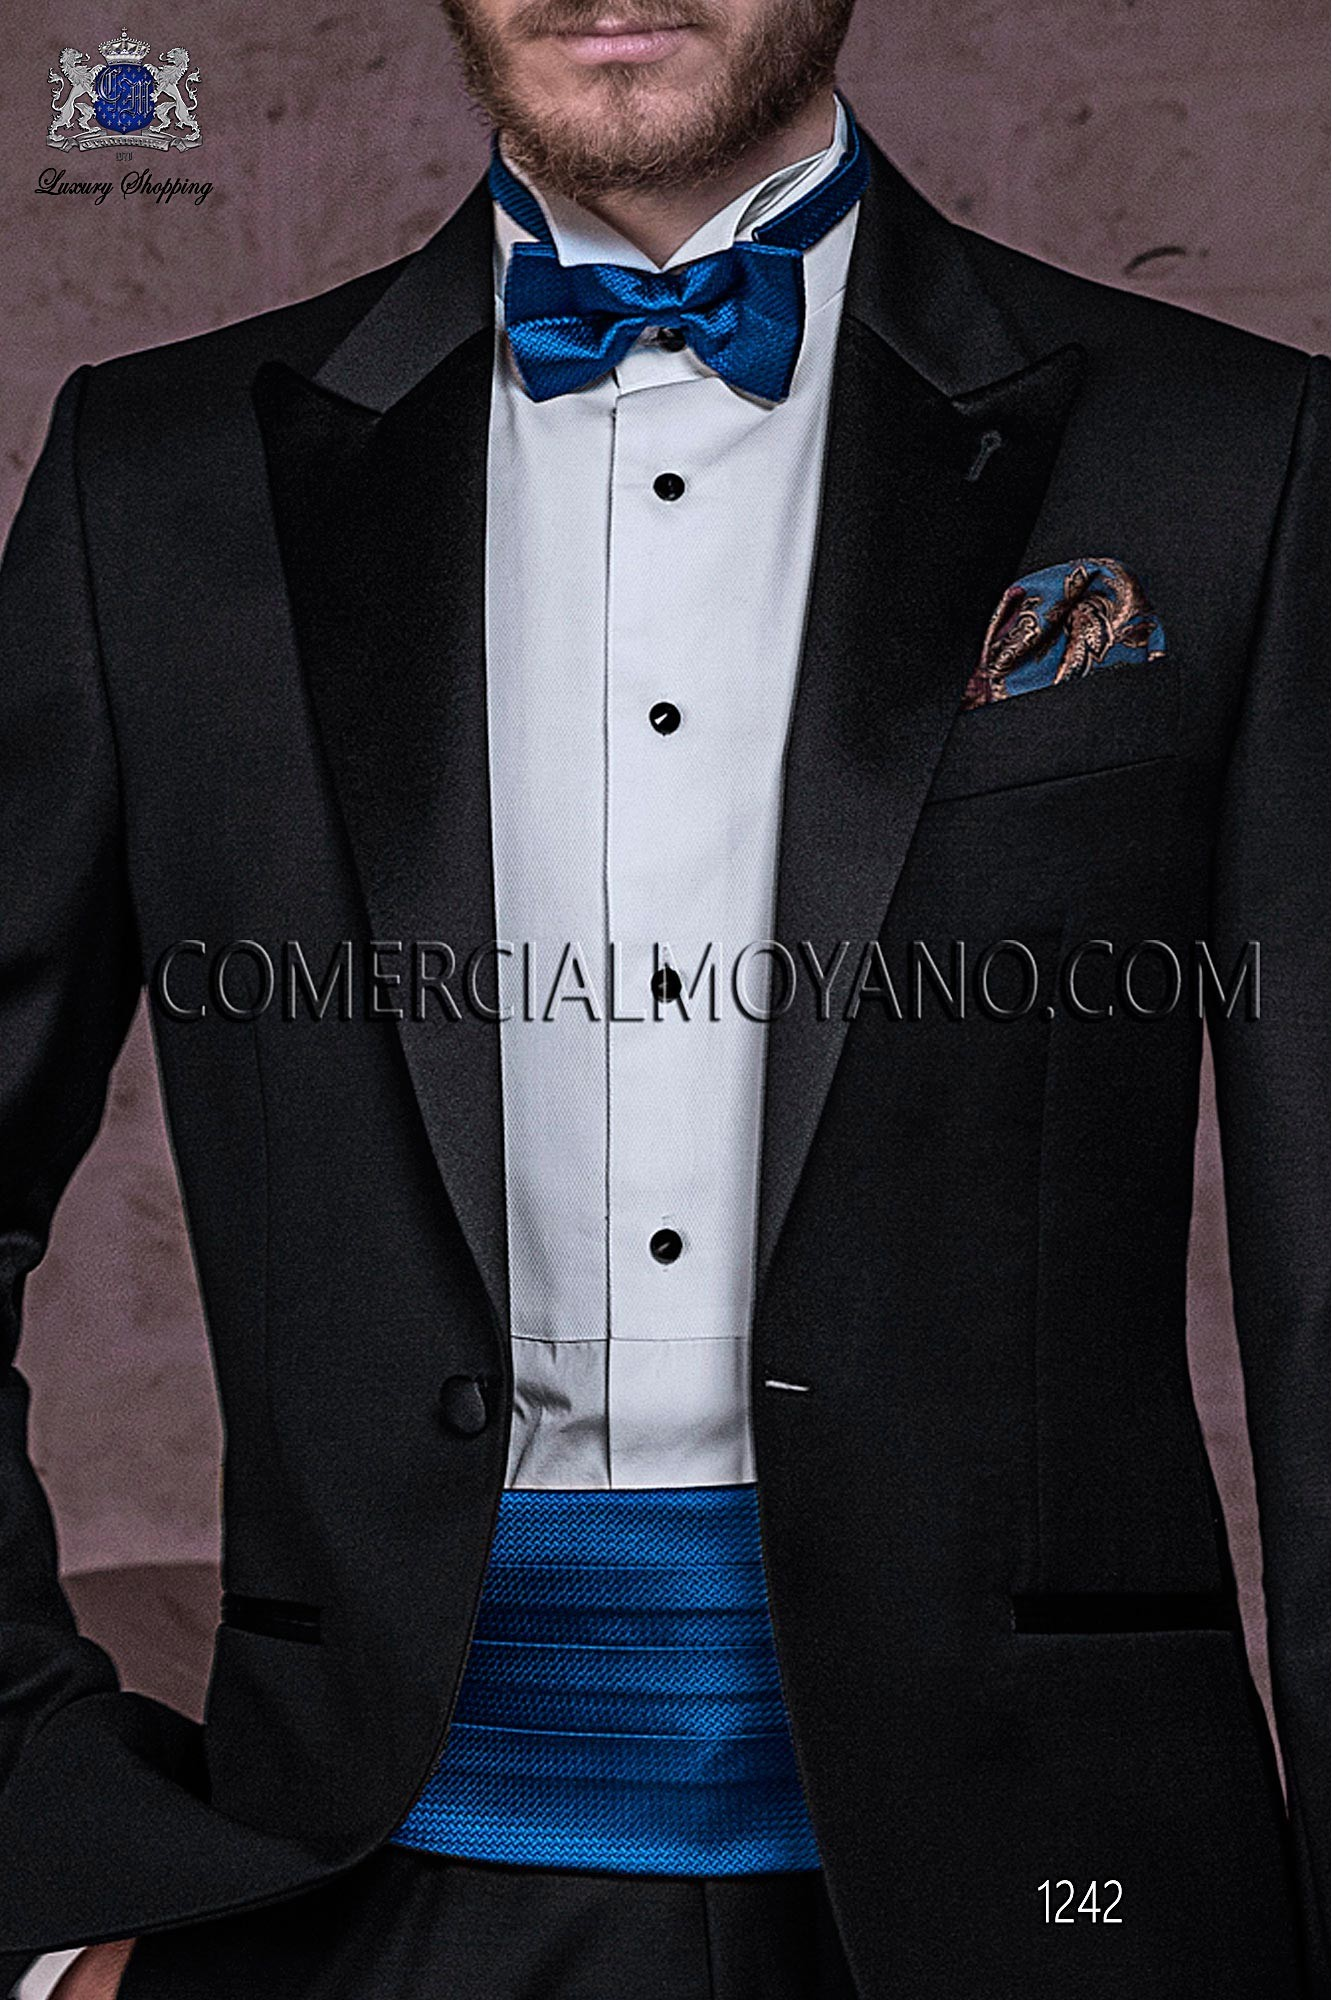 Italian blacktie Black men wedding suit, model: 1242 Ottavio Nuccio Gala Black Tie Collection